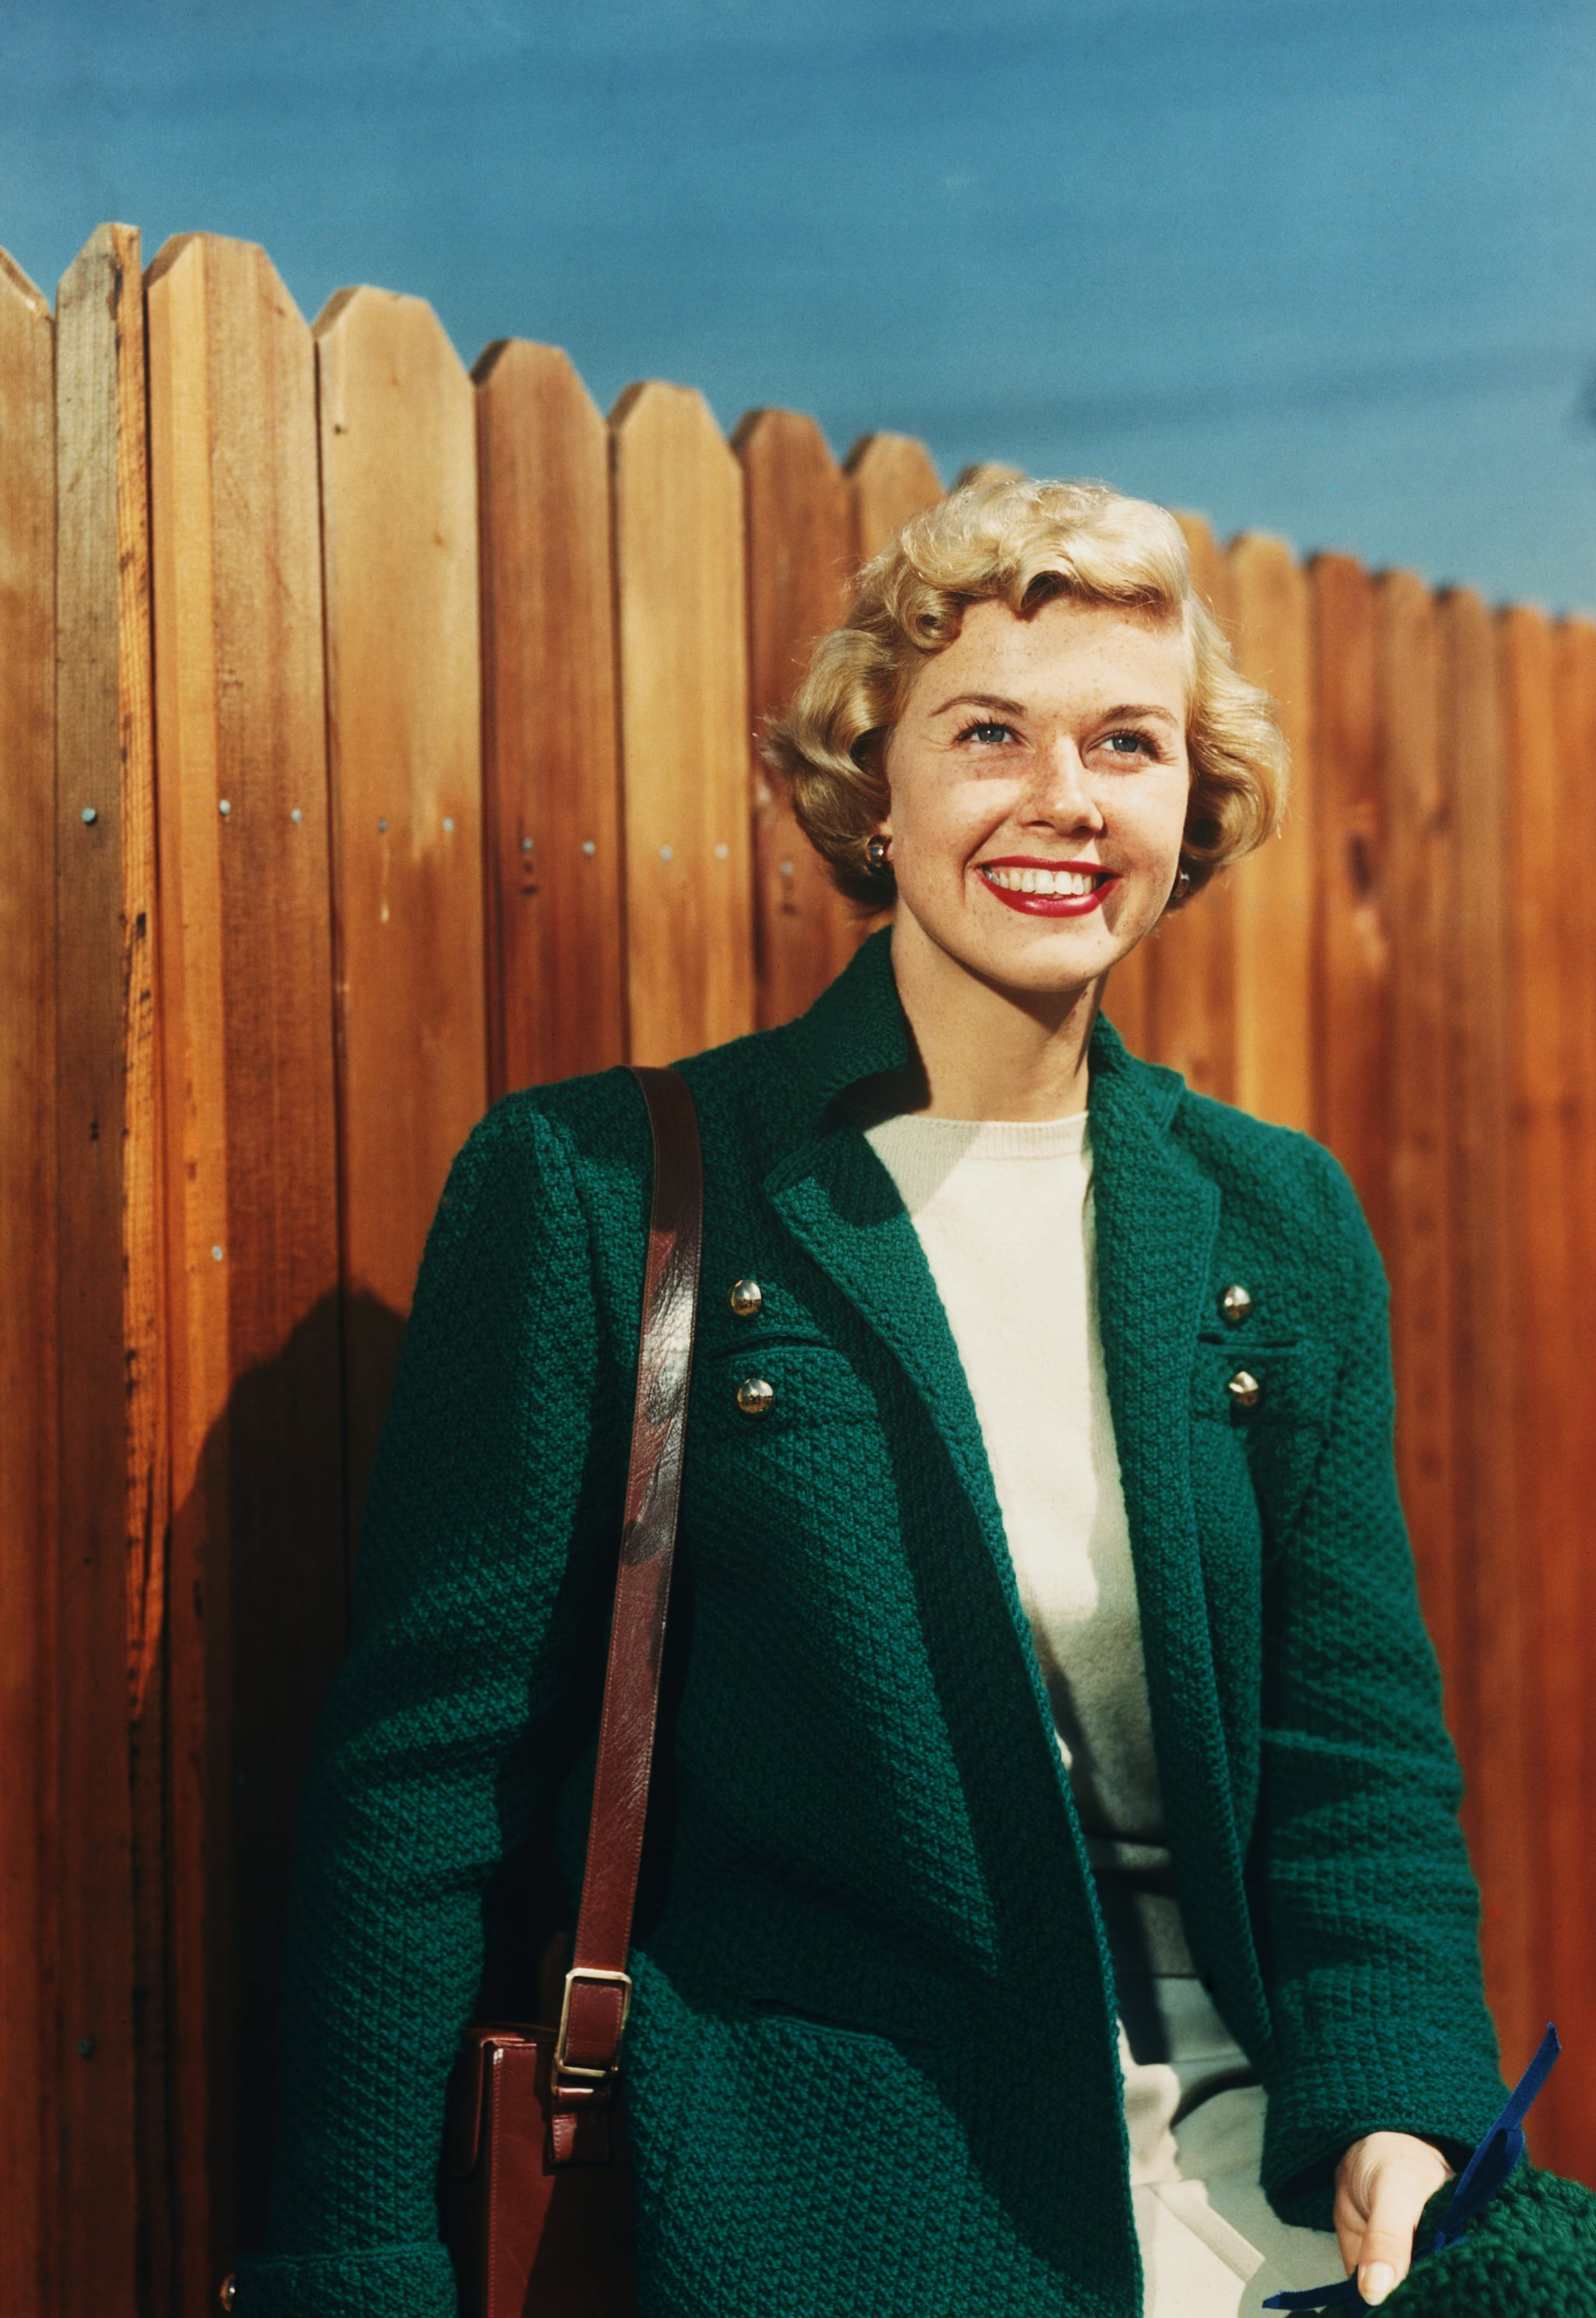 Doris Day in Green Jacket by Fence (Photo by Herbert Dorfman/Corbis via Getty Images)